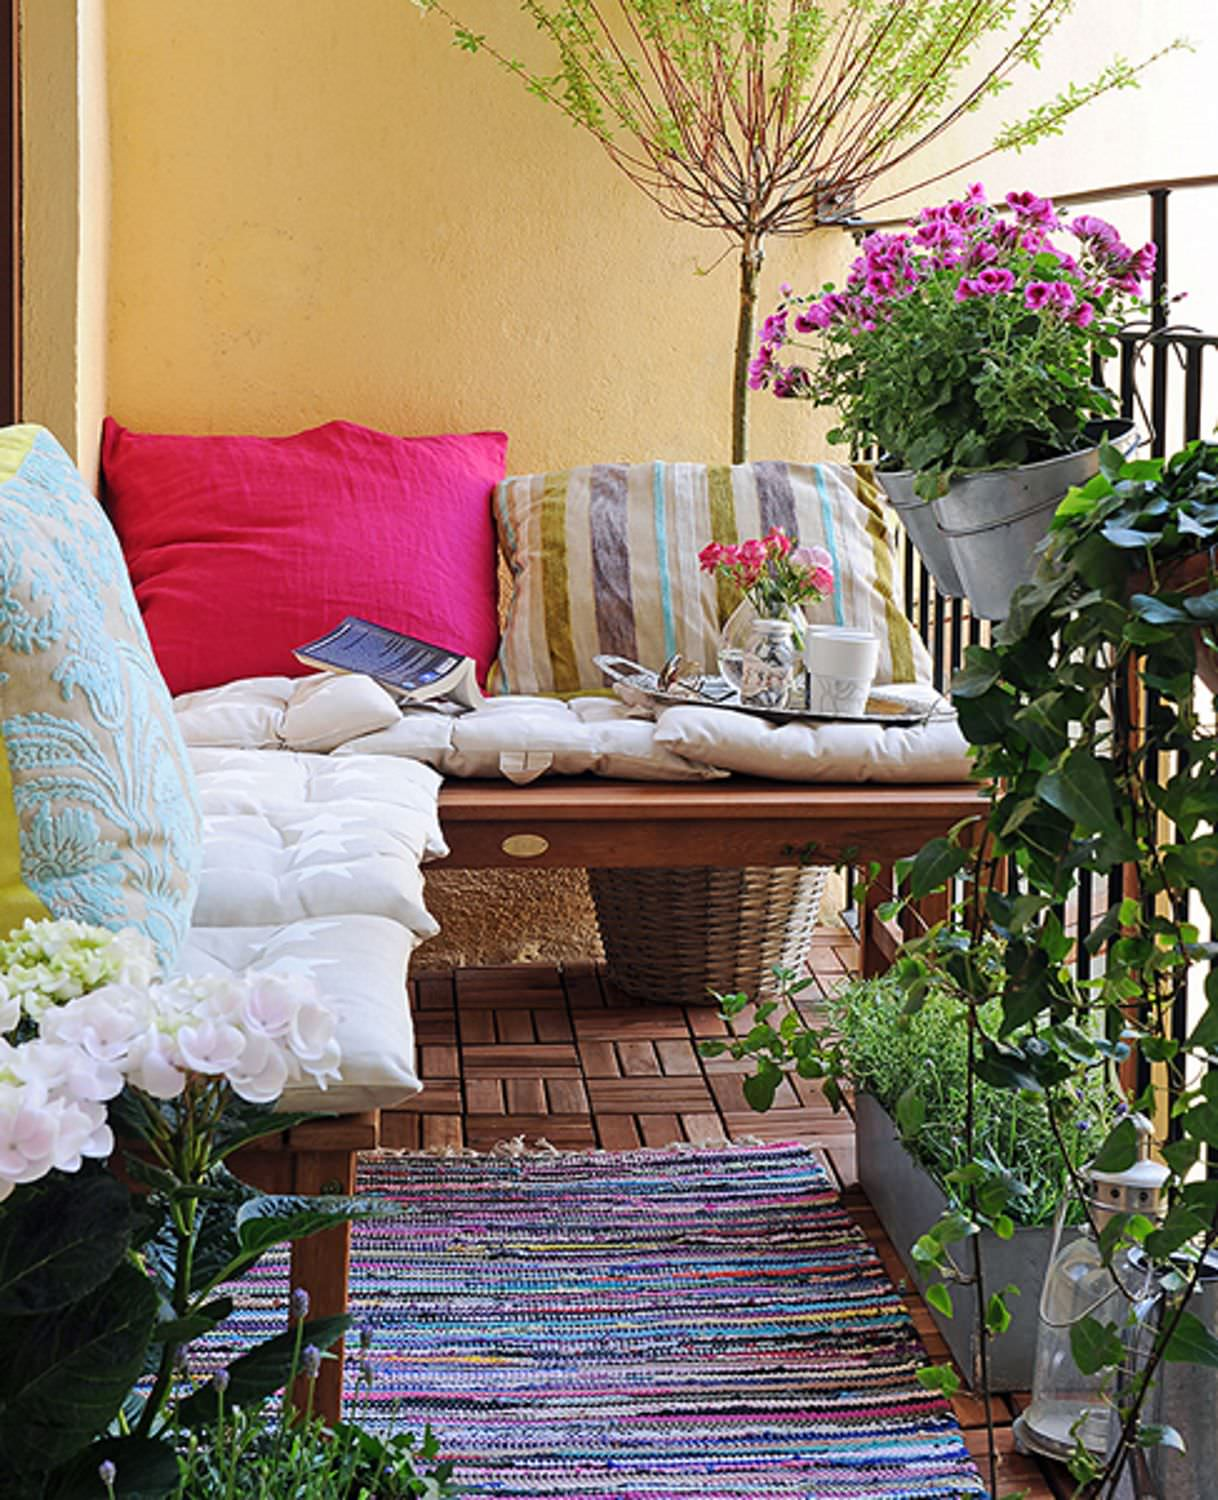 A colored carpet will refresh your terrace balcony beautiful.